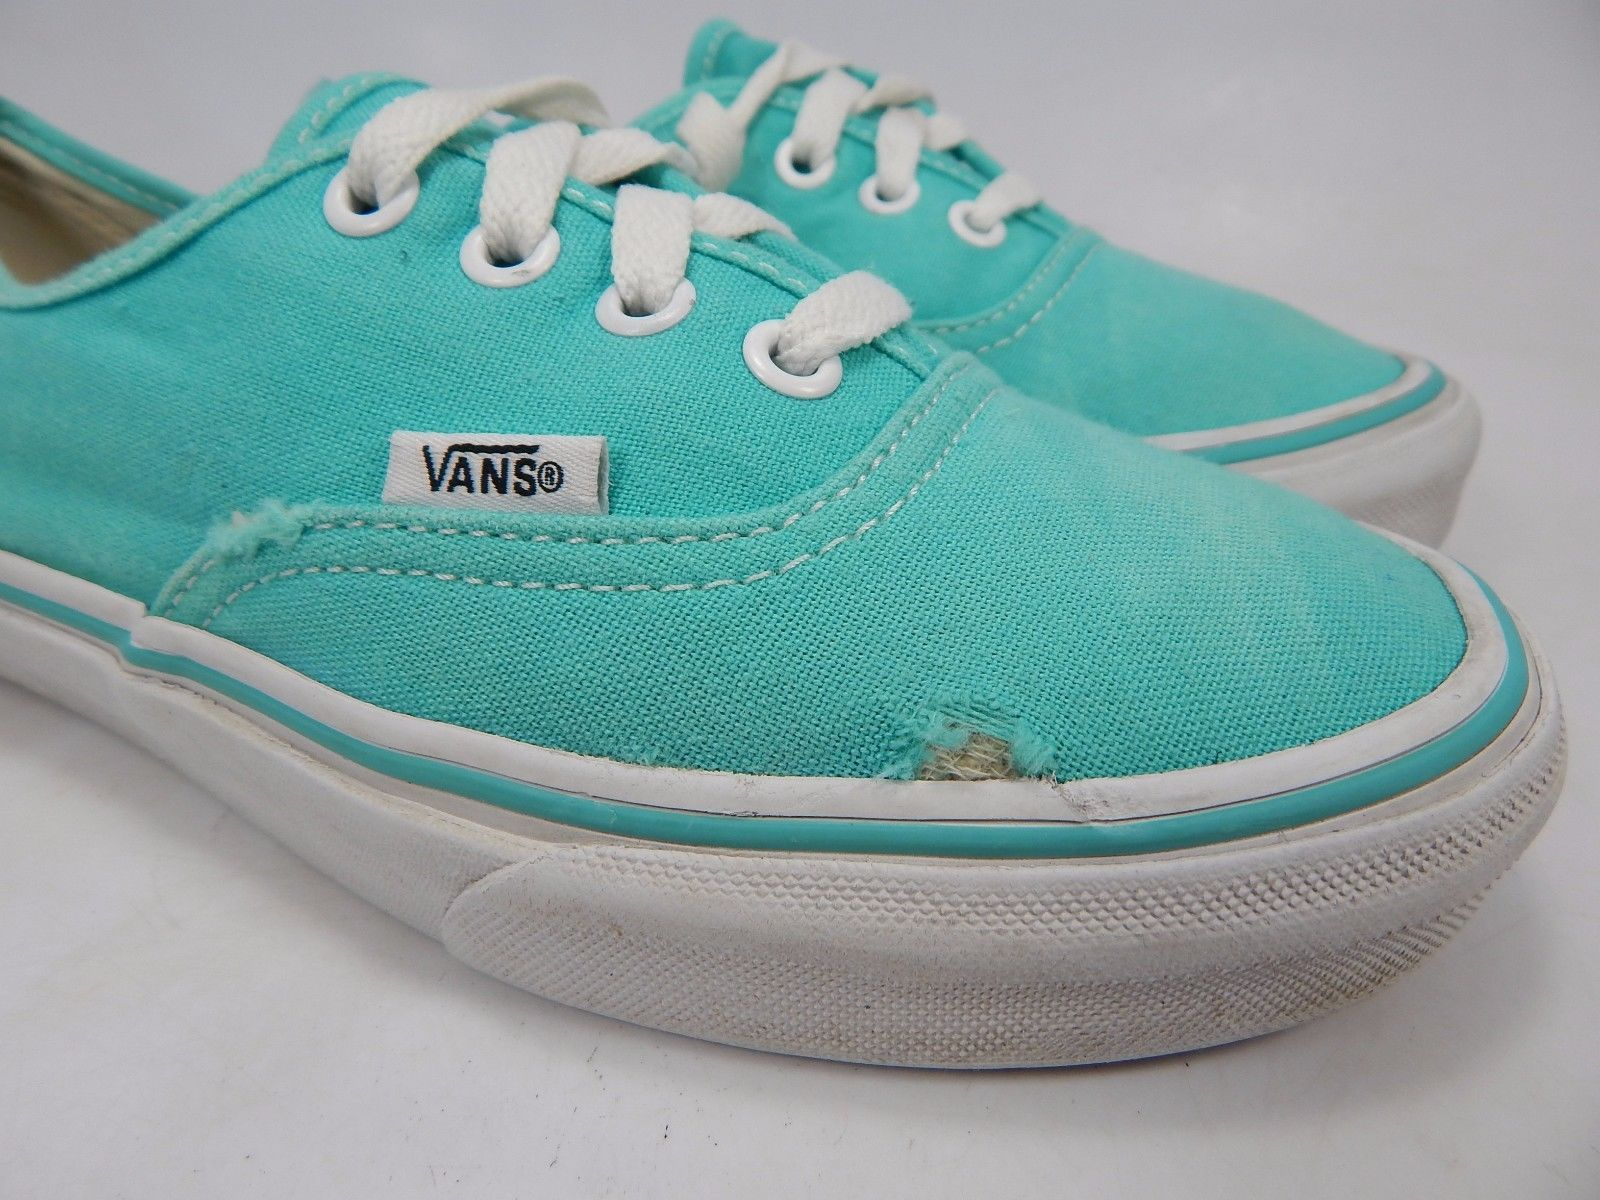 Vans Off The Wall Women's Canvas Casual Skate Shoes Size US 6 EU 36 Aqua T375